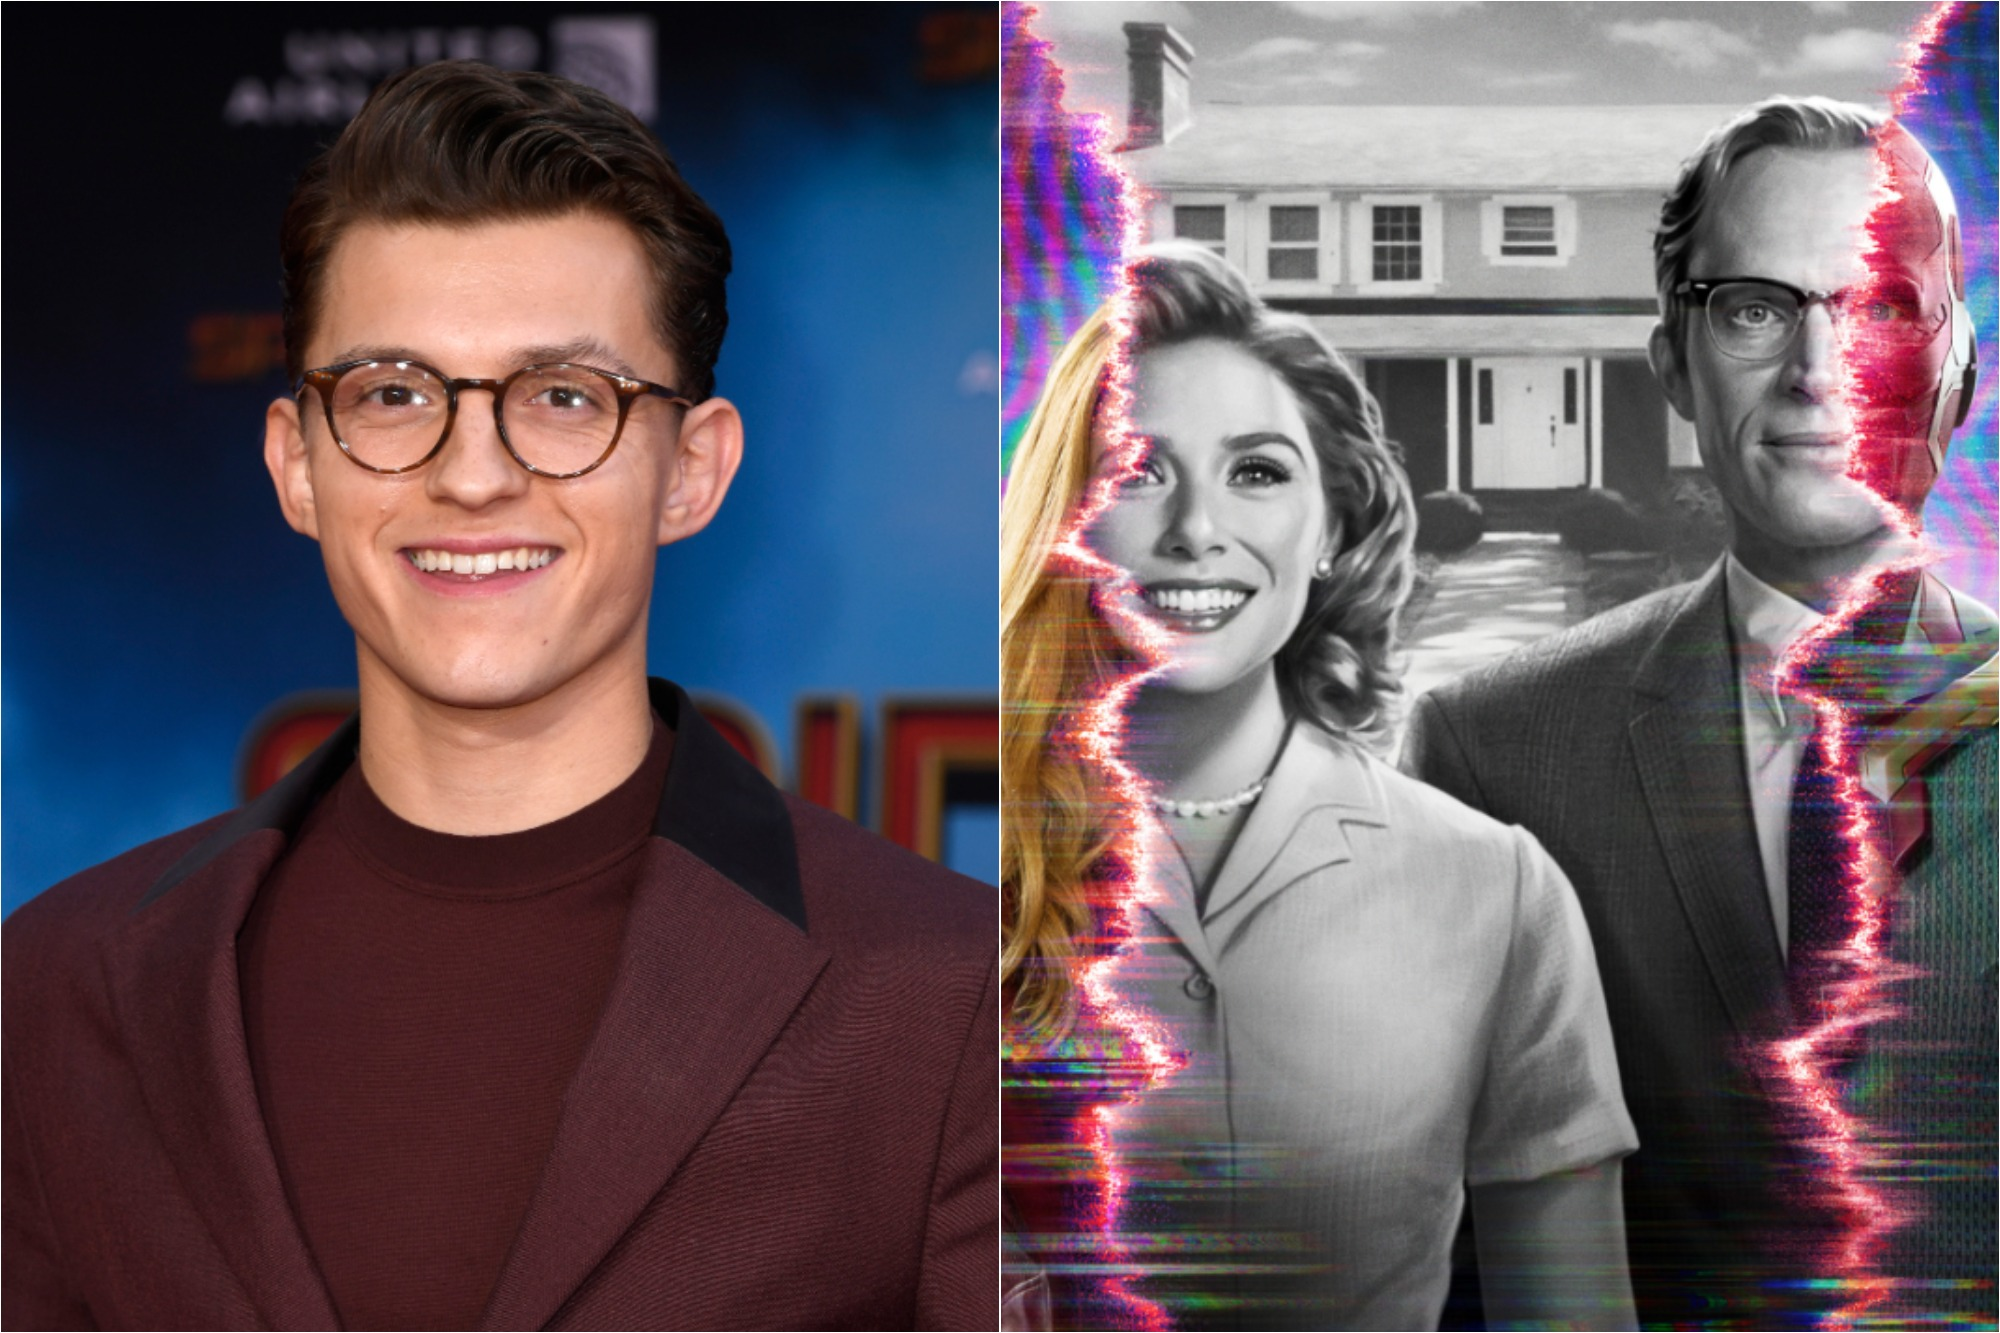 (L) Tom Holland at the premiere of 'Spider-Man Far From Home' on June 26, 2019 / (R) Promotional poster for 'WandaVision' starring Elizabeth Olsen and Paul Bettany